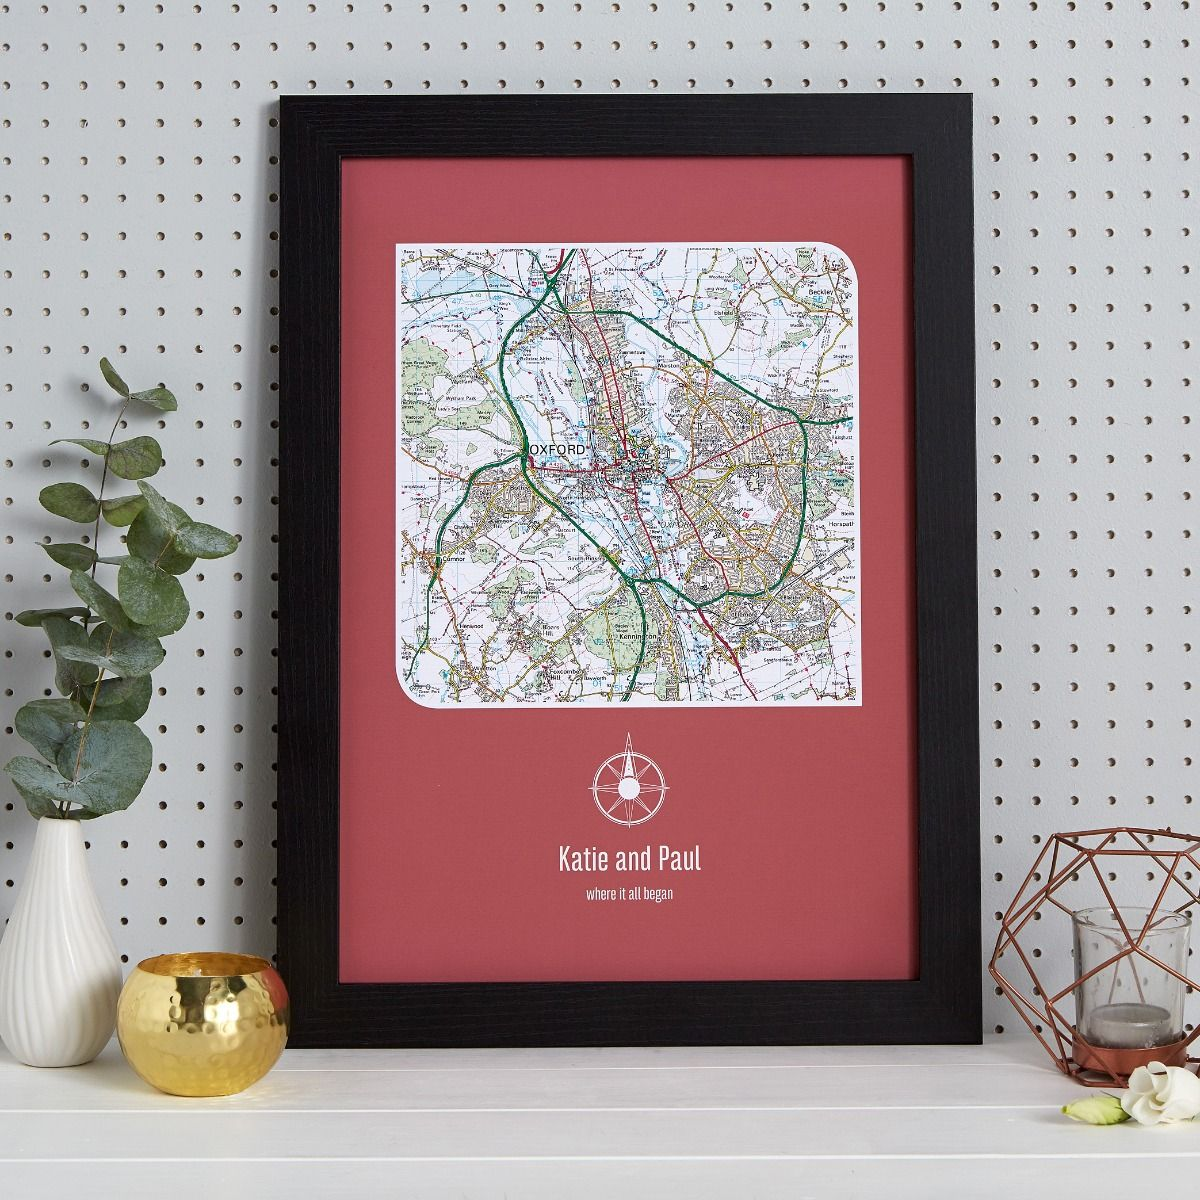 personalised uk postcode map image